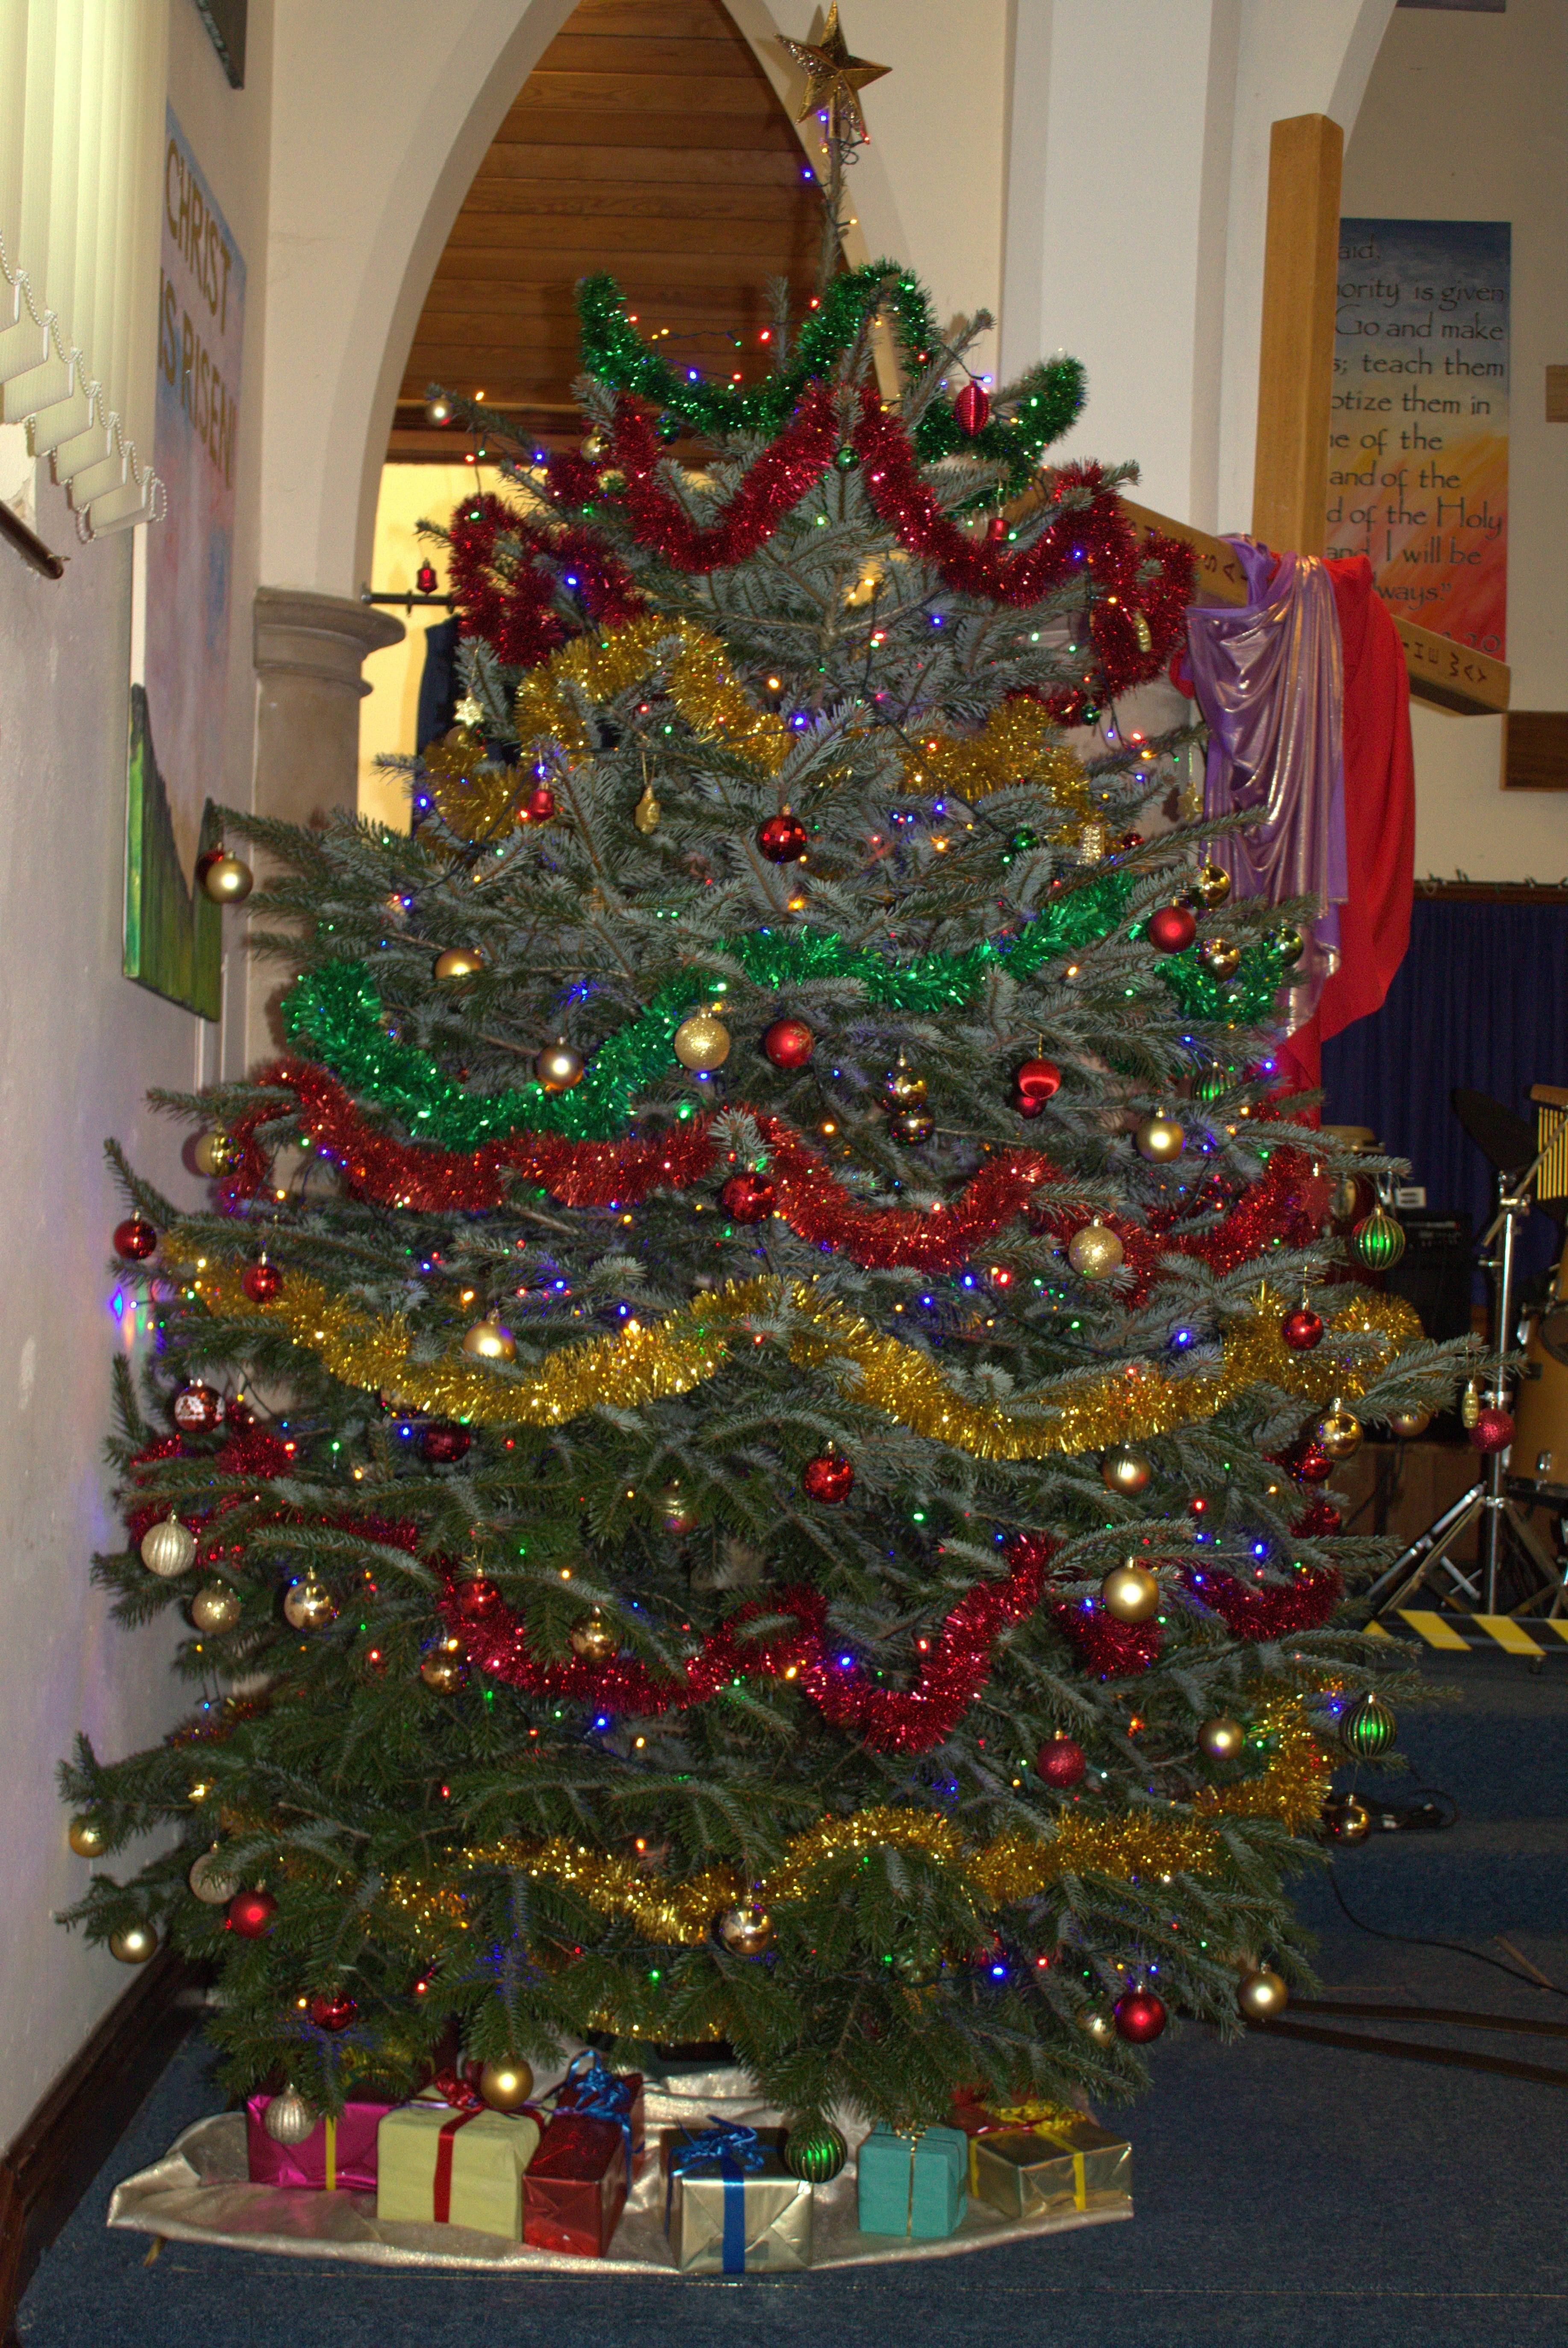 Christmas tree in the church